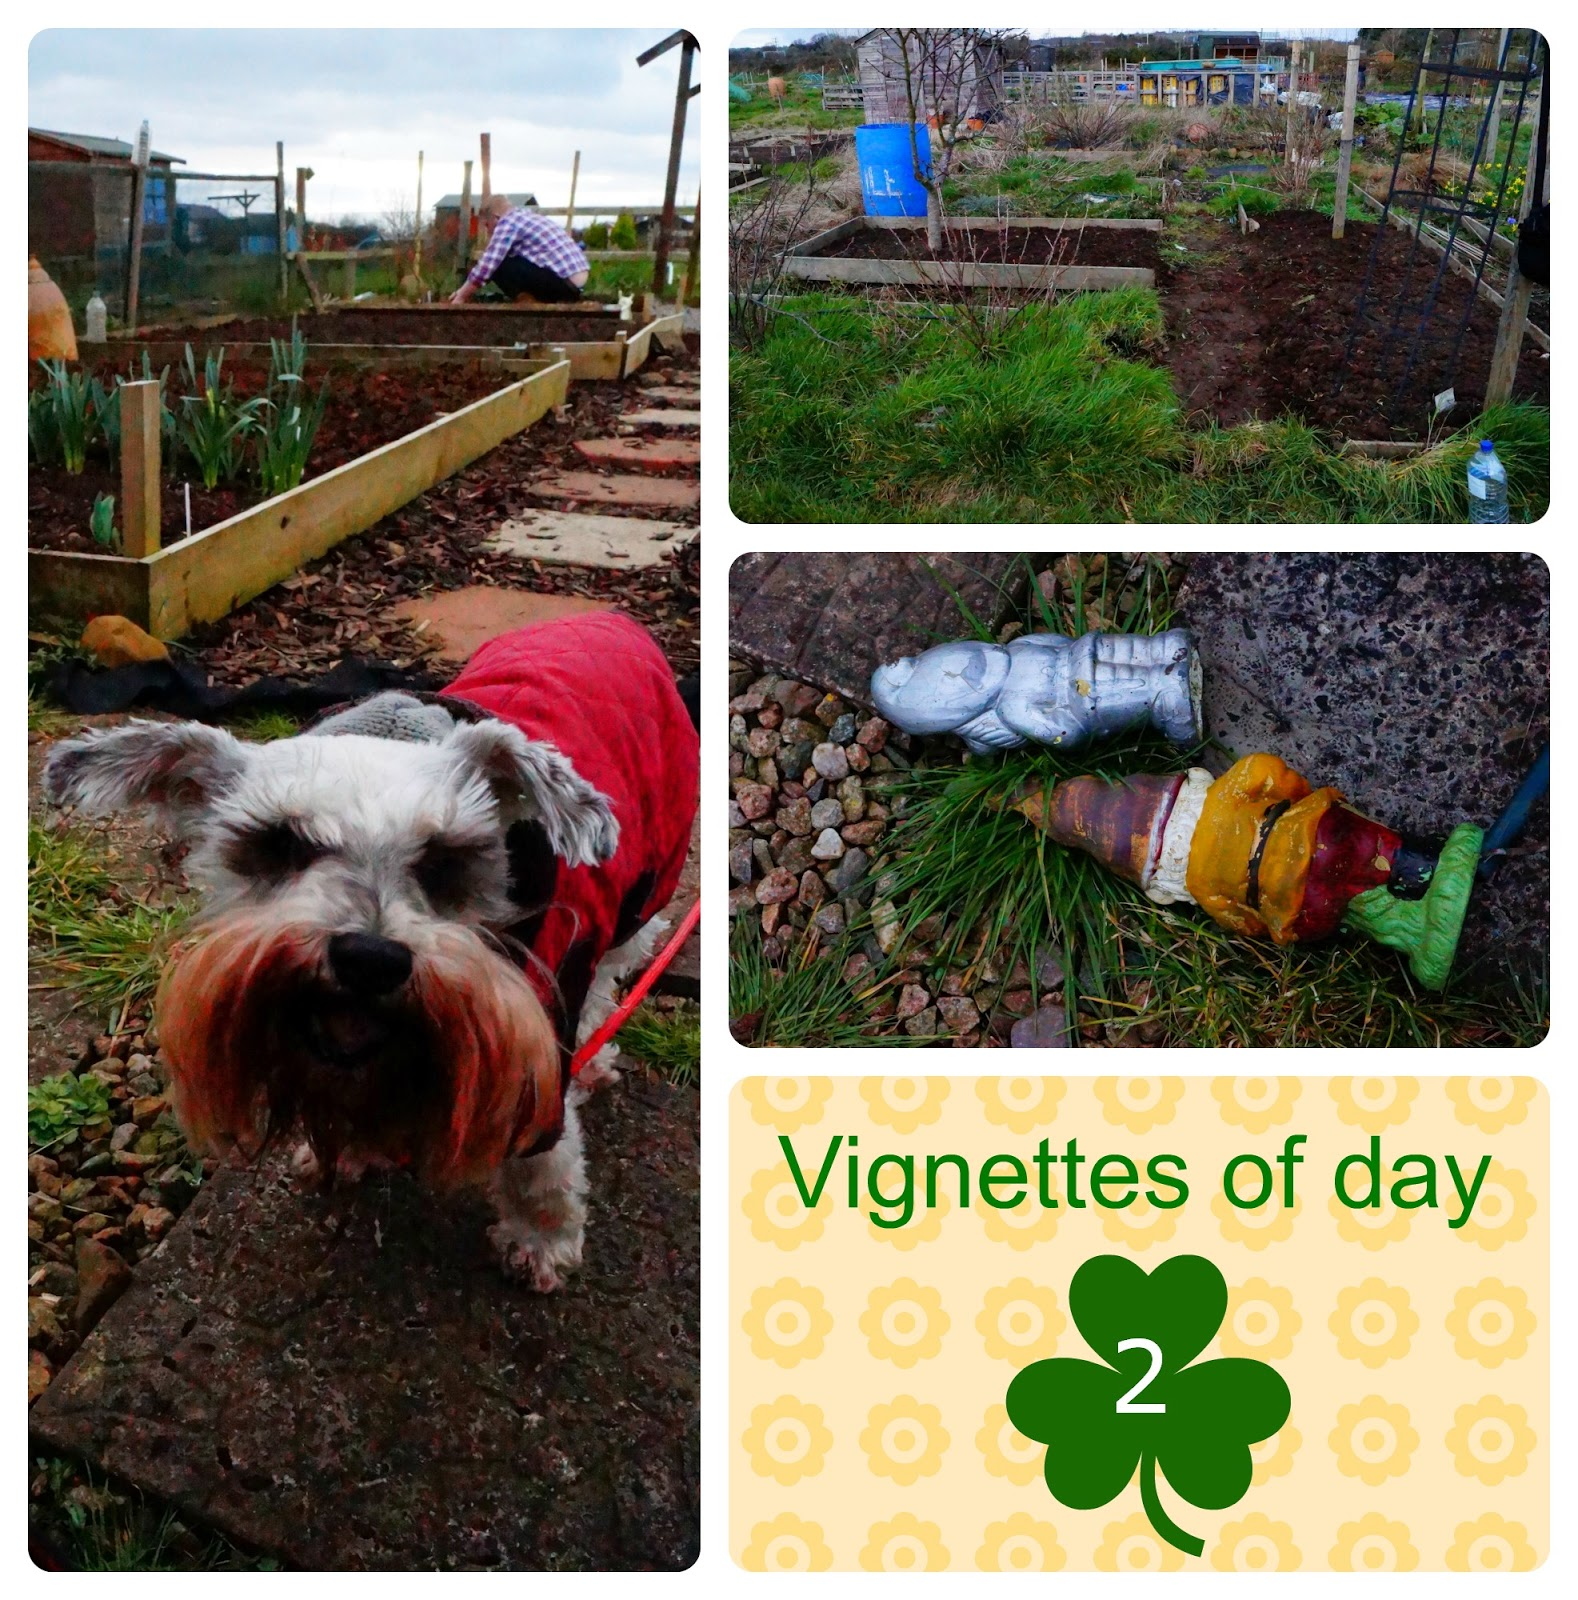 vignettes of day 2 - 'growourown.blogspot.com' ~ allotment blog